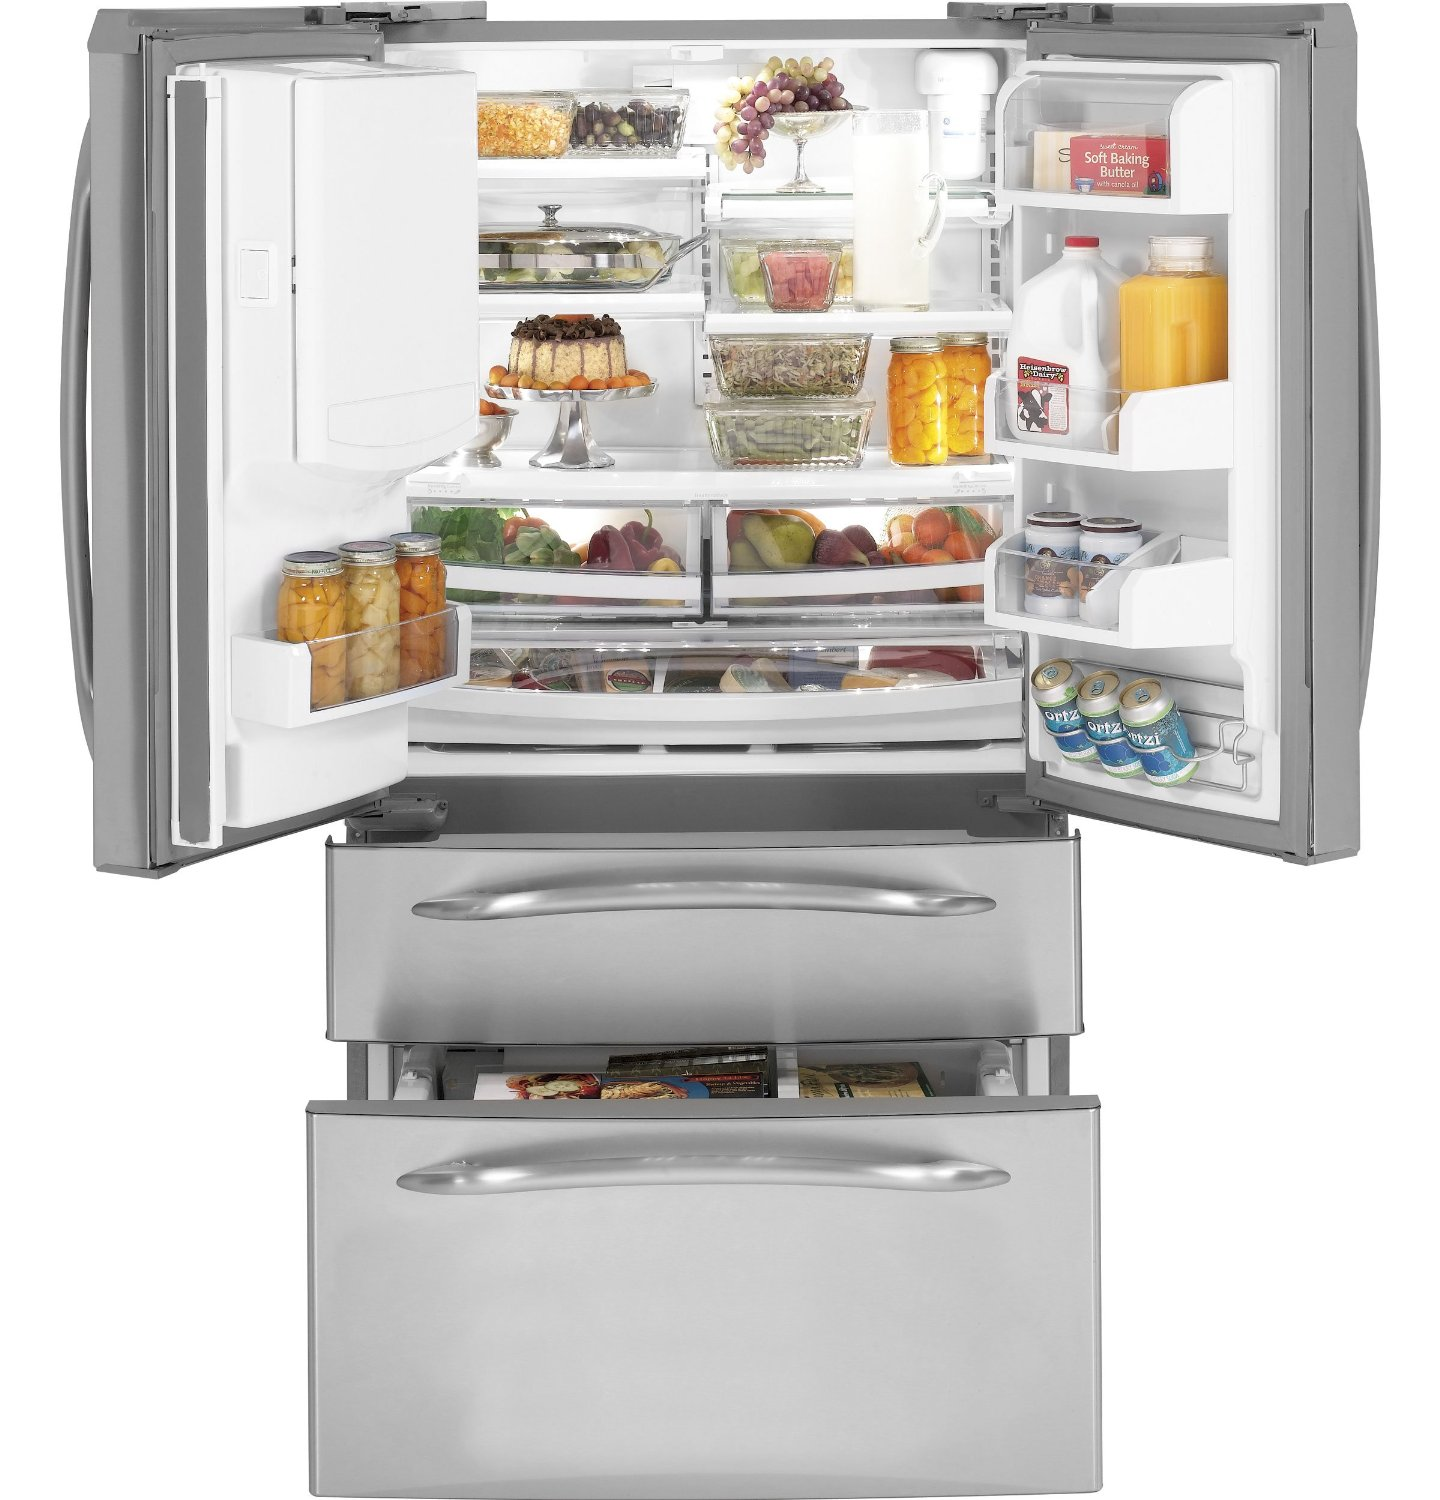 Depth Refrigerator (Stainless Steel)